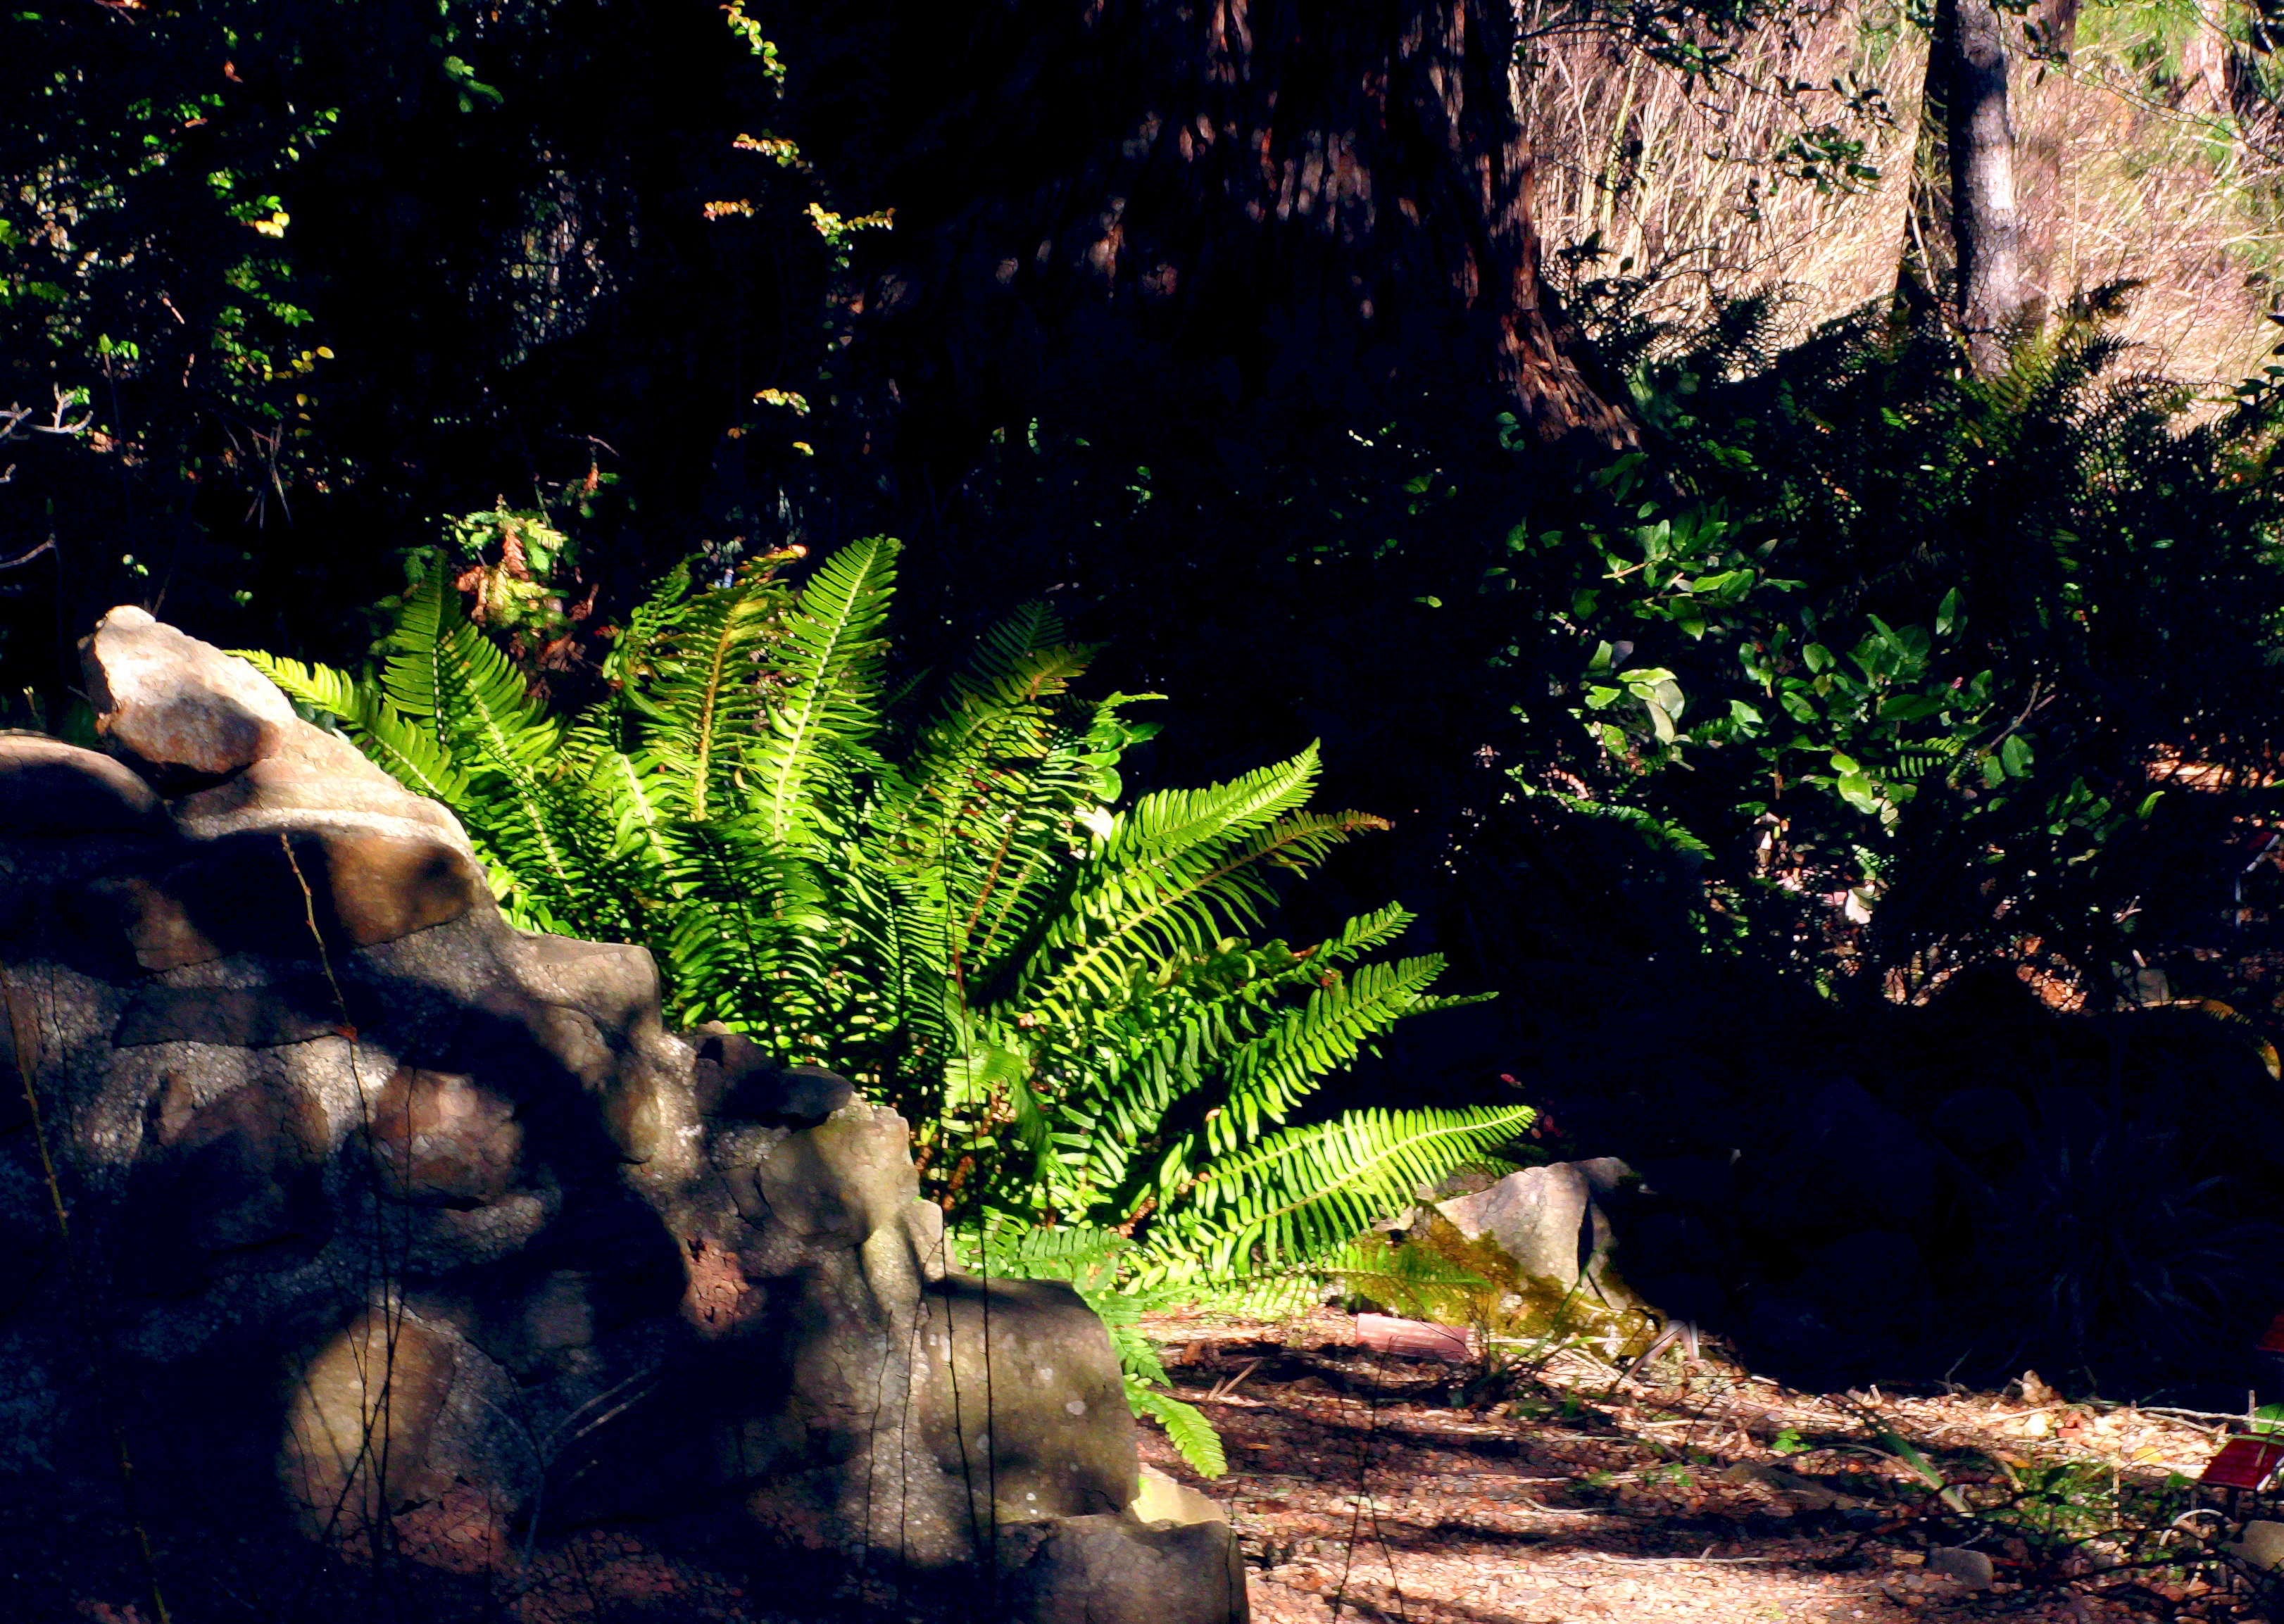 Western Sword Ferns: Growing and Plant Care Tips